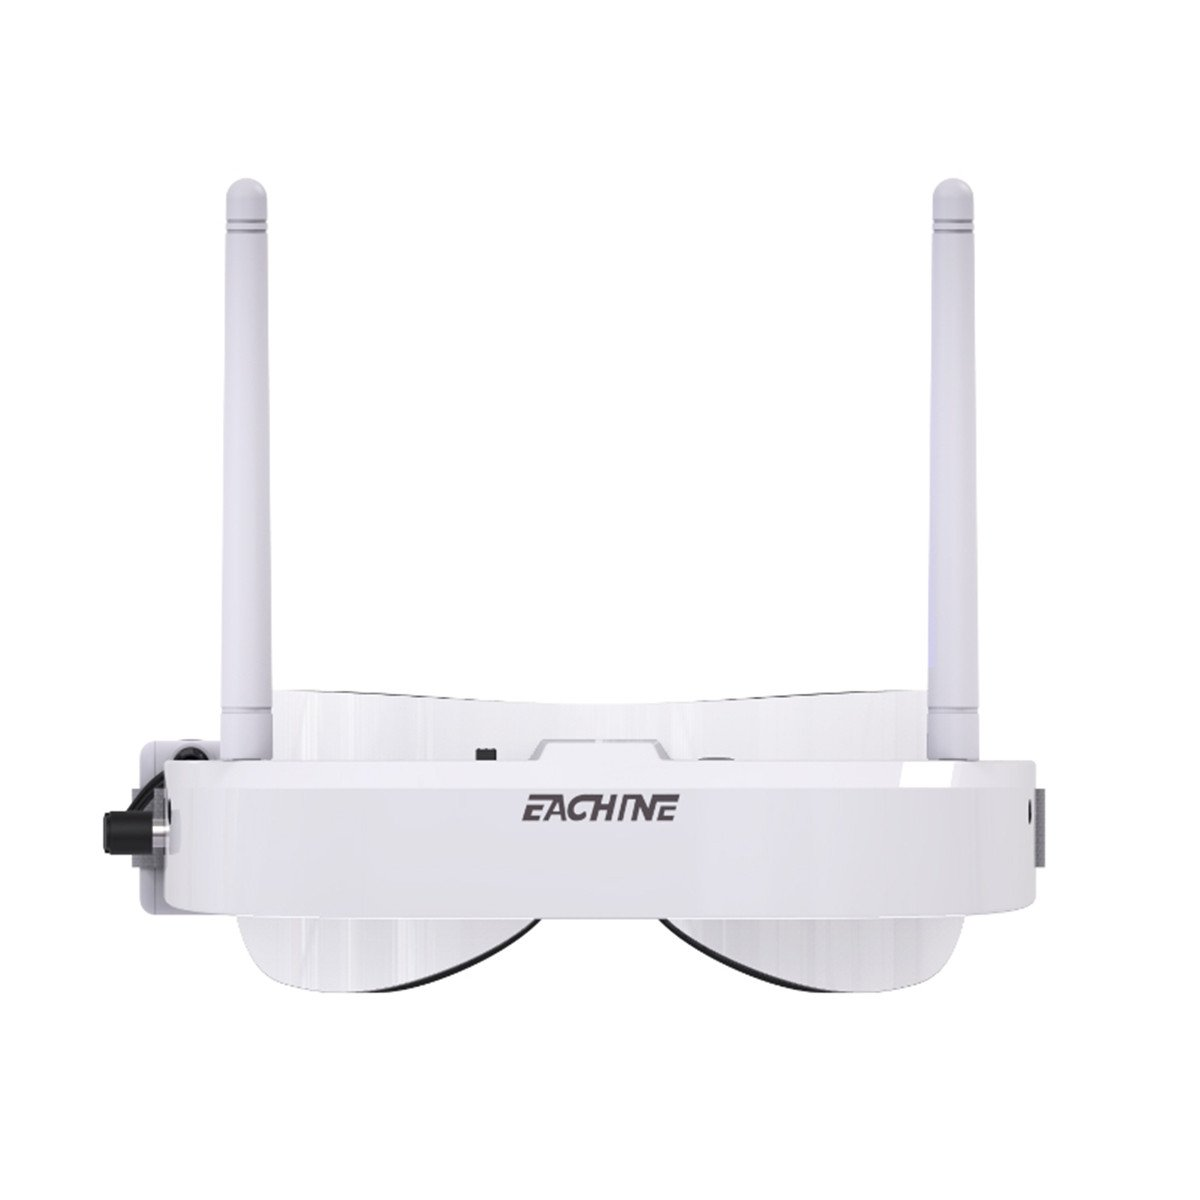 Eachine Ev100 Fpv Goggles Headset 720540 58g 72ch With Wiring Diagram Dual Antennas Fan 74v 1000mah Battery For Rc Racing Drone Quadcopters By Crazepony